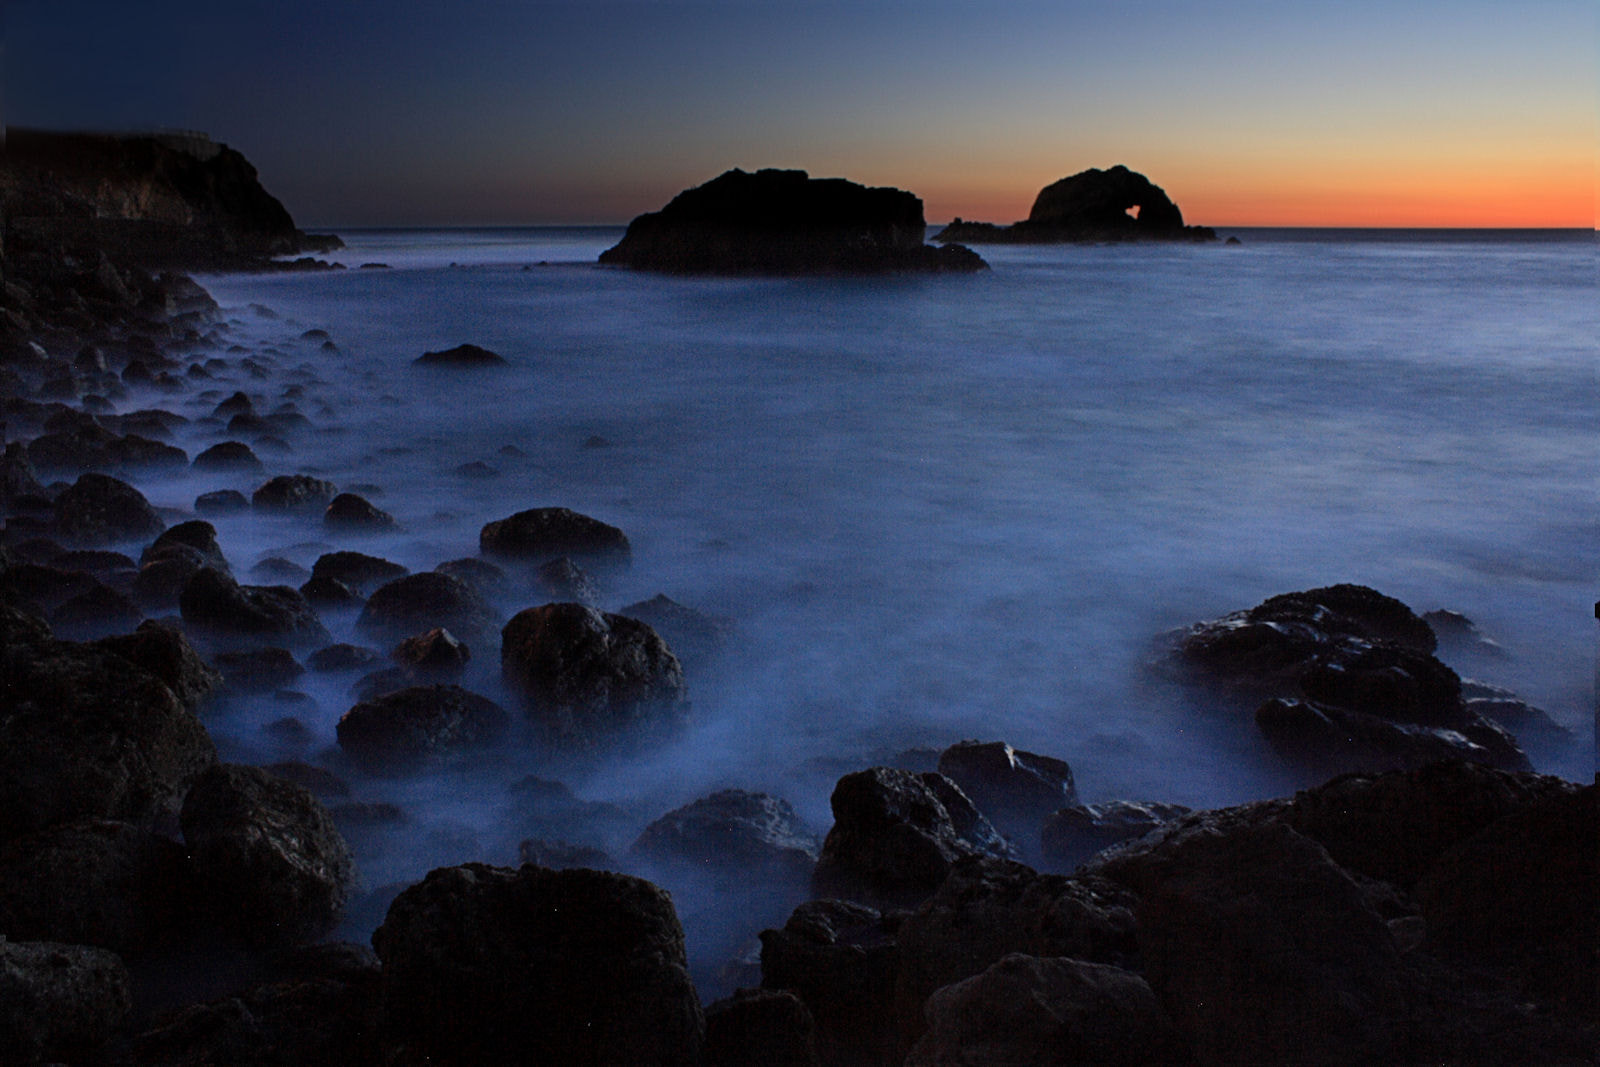 Photograph Sutro Baths Sunset by Greg K on 500px